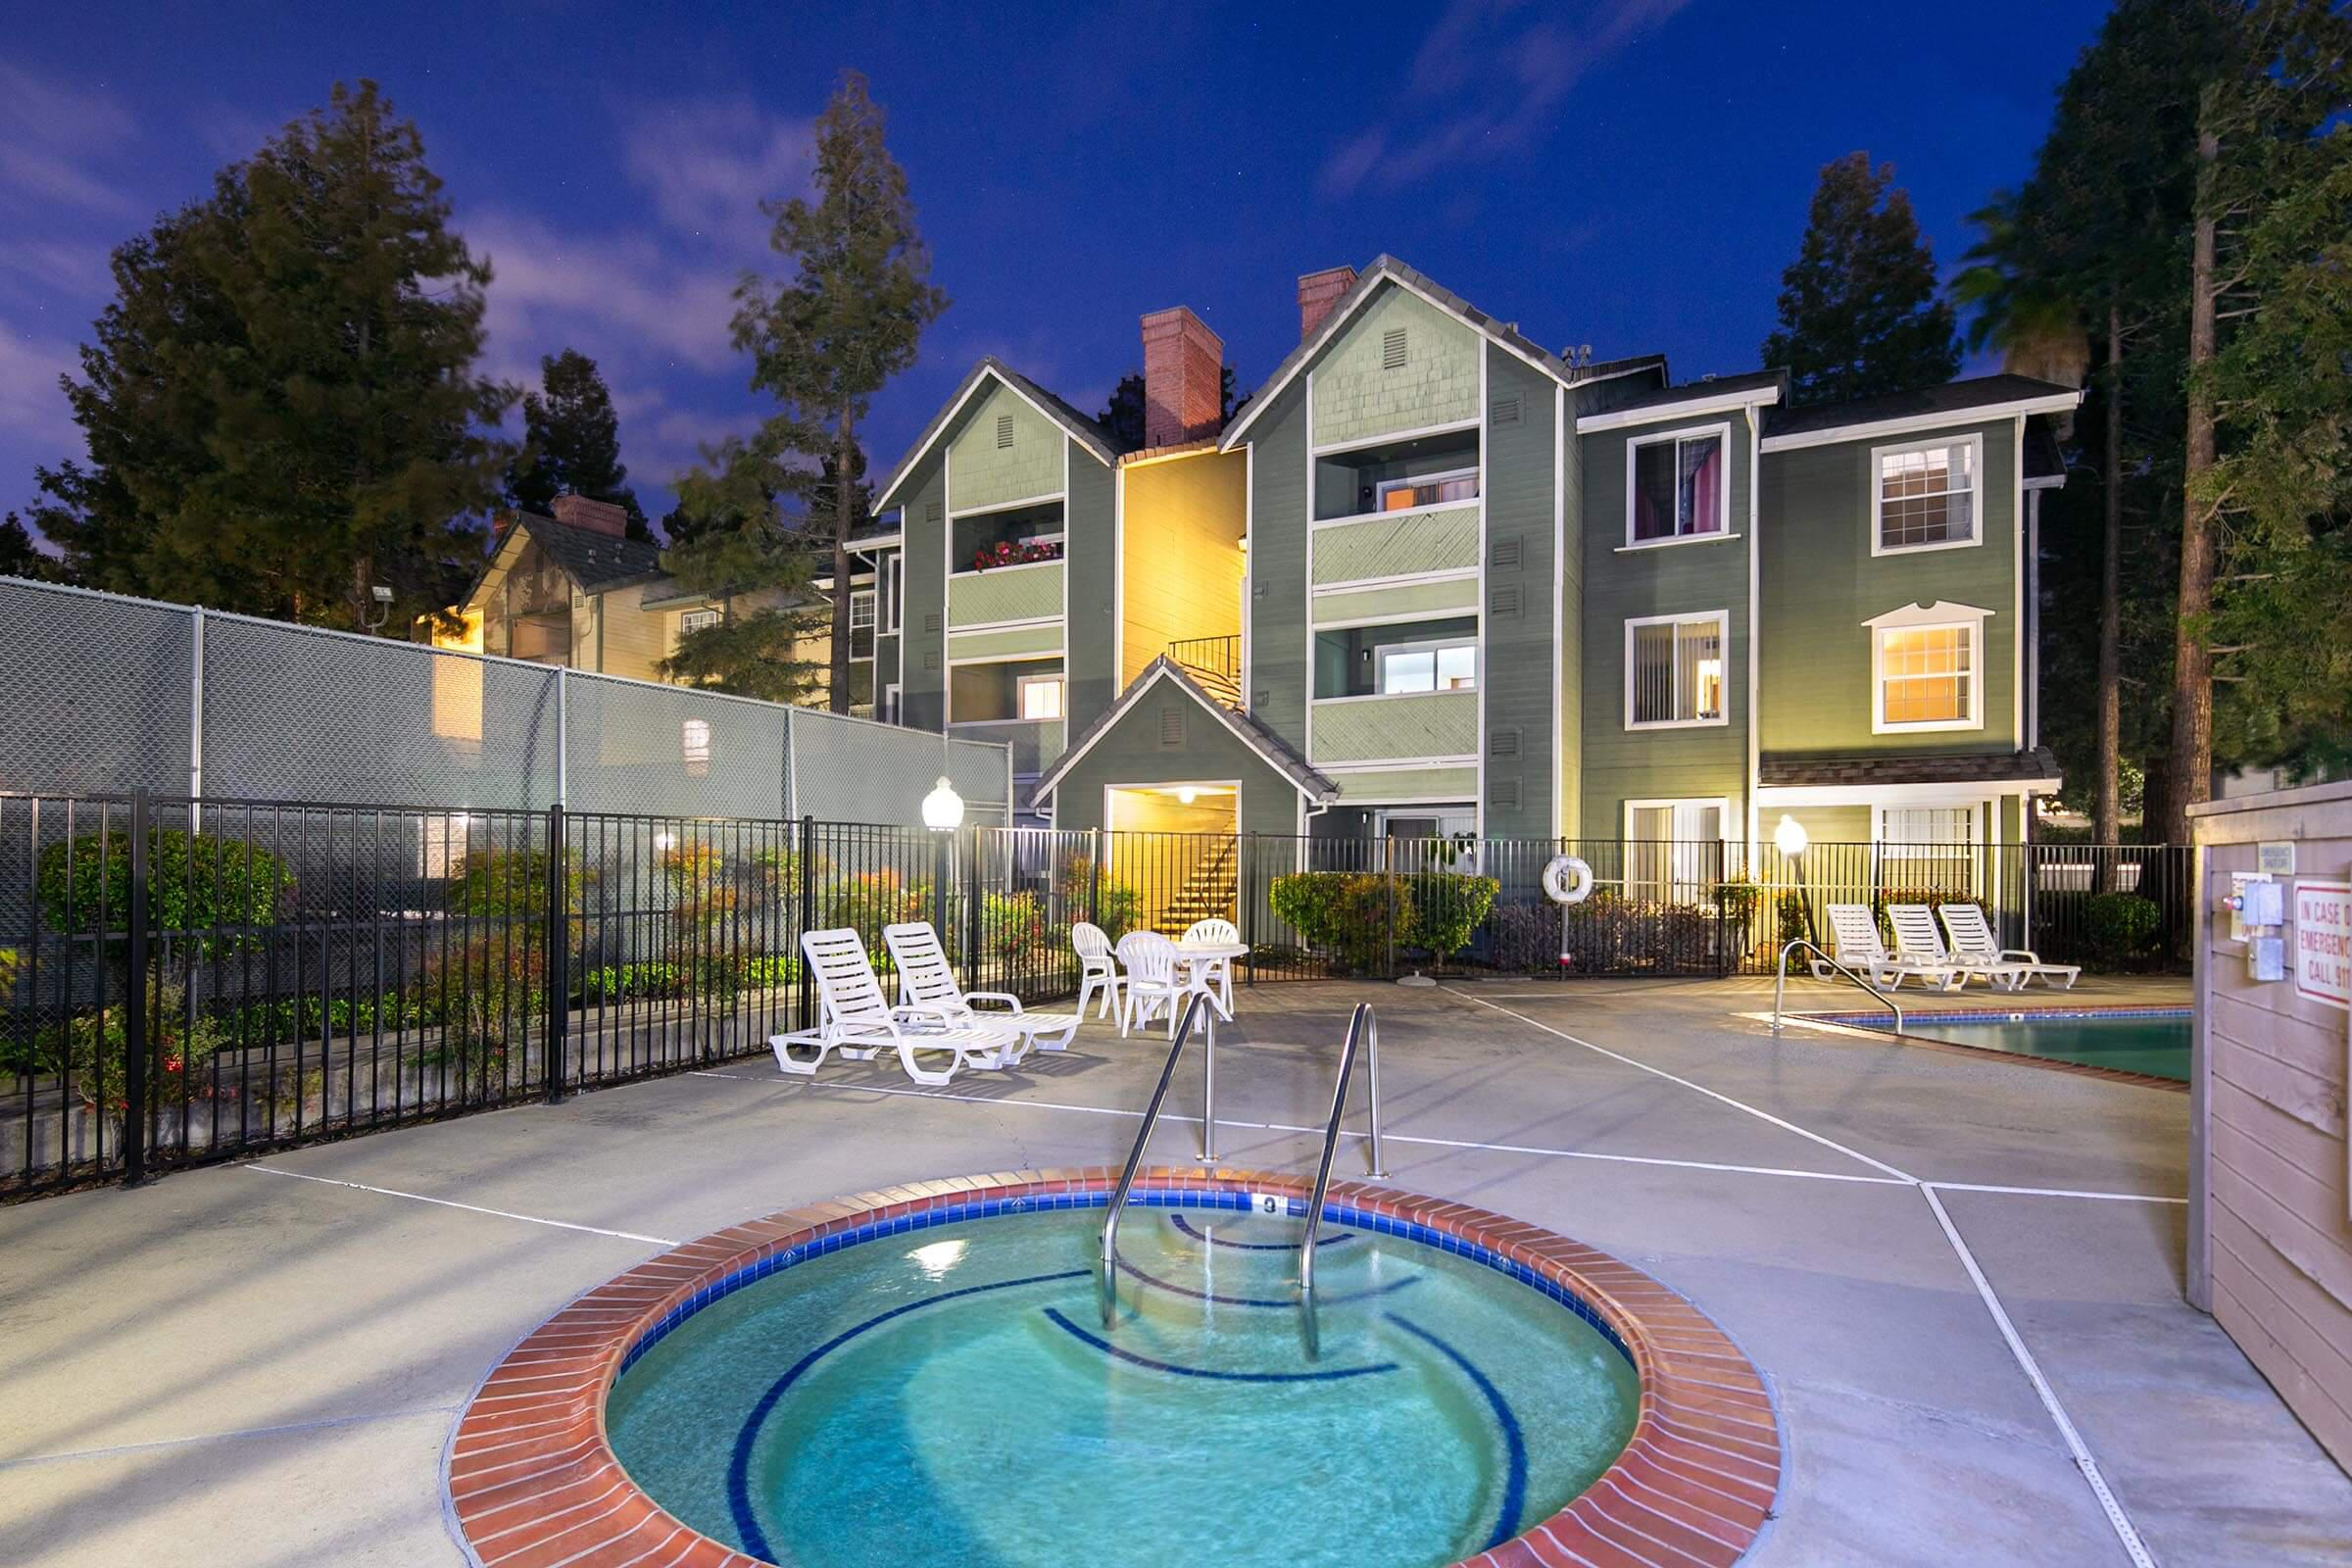 Pool at Victorian Square Apartments in  Milpitas, CALandscaping at Victorian Square in Milpitas CA